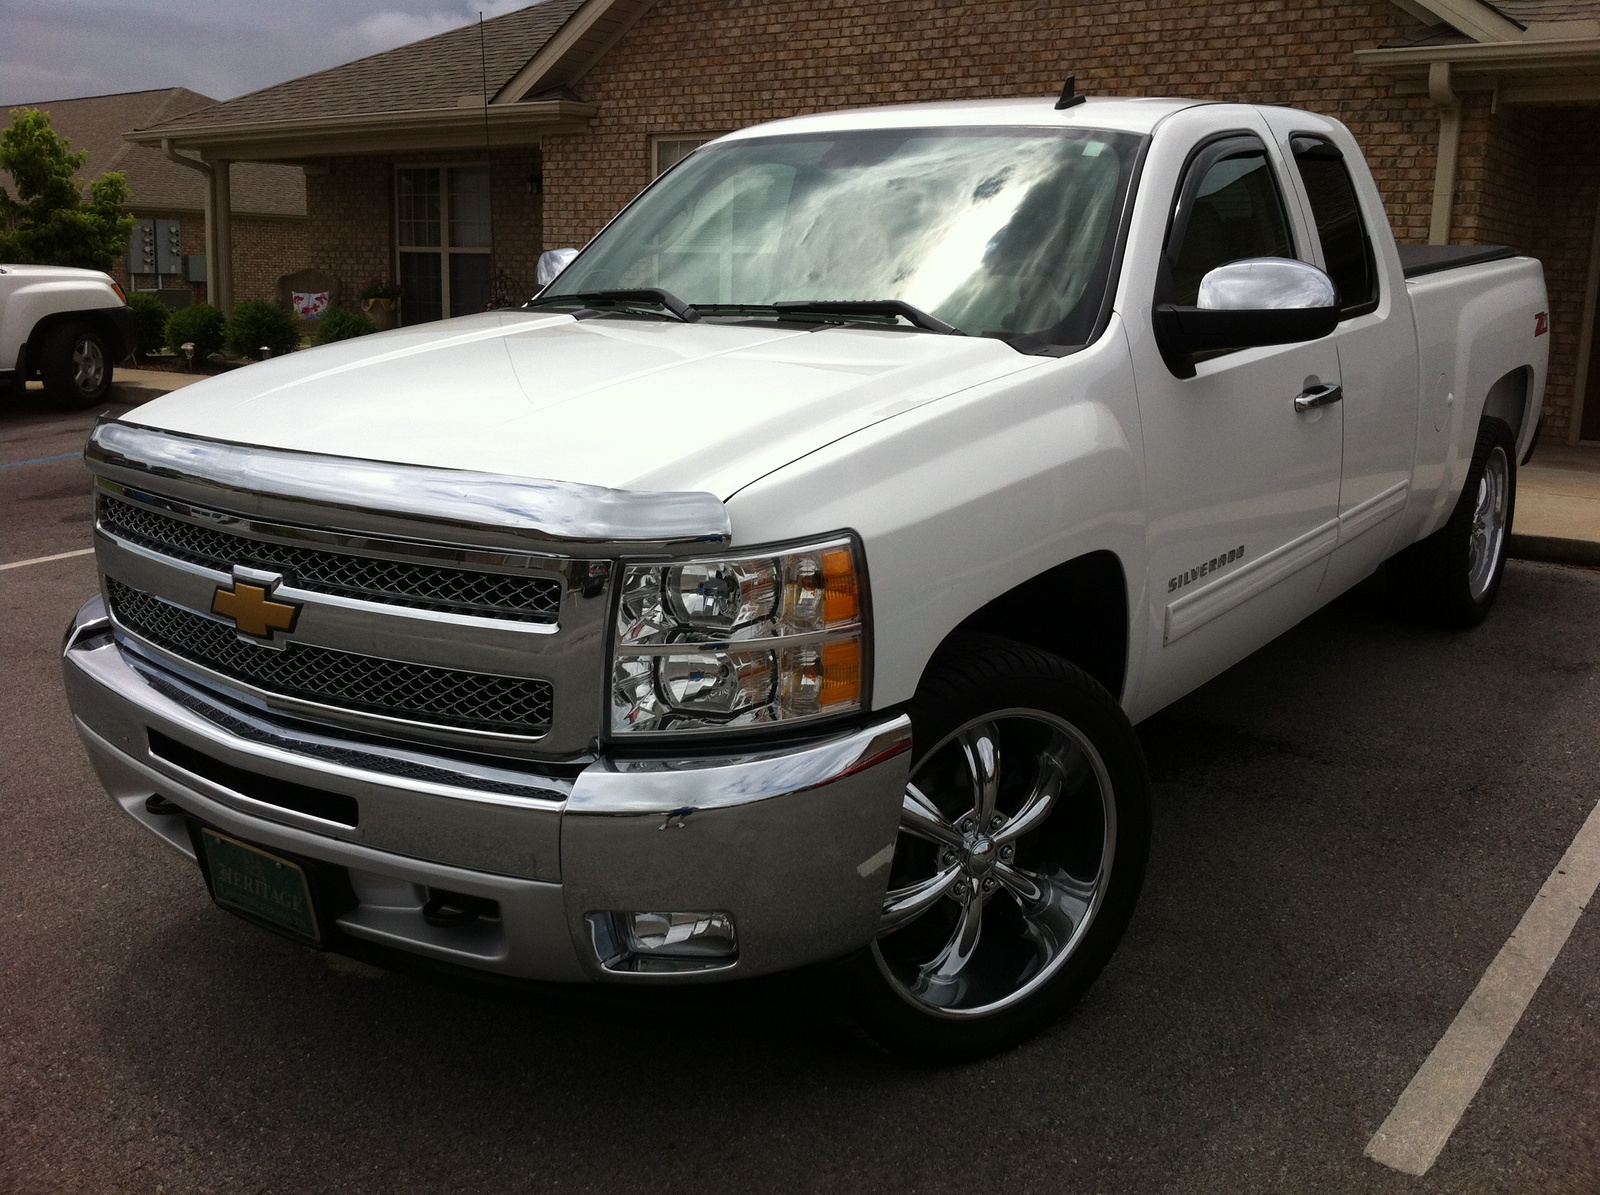 picture of 2013 chevrolet silverado 1500 lt ext cab exterior. Cars Review. Best American Auto & Cars Review